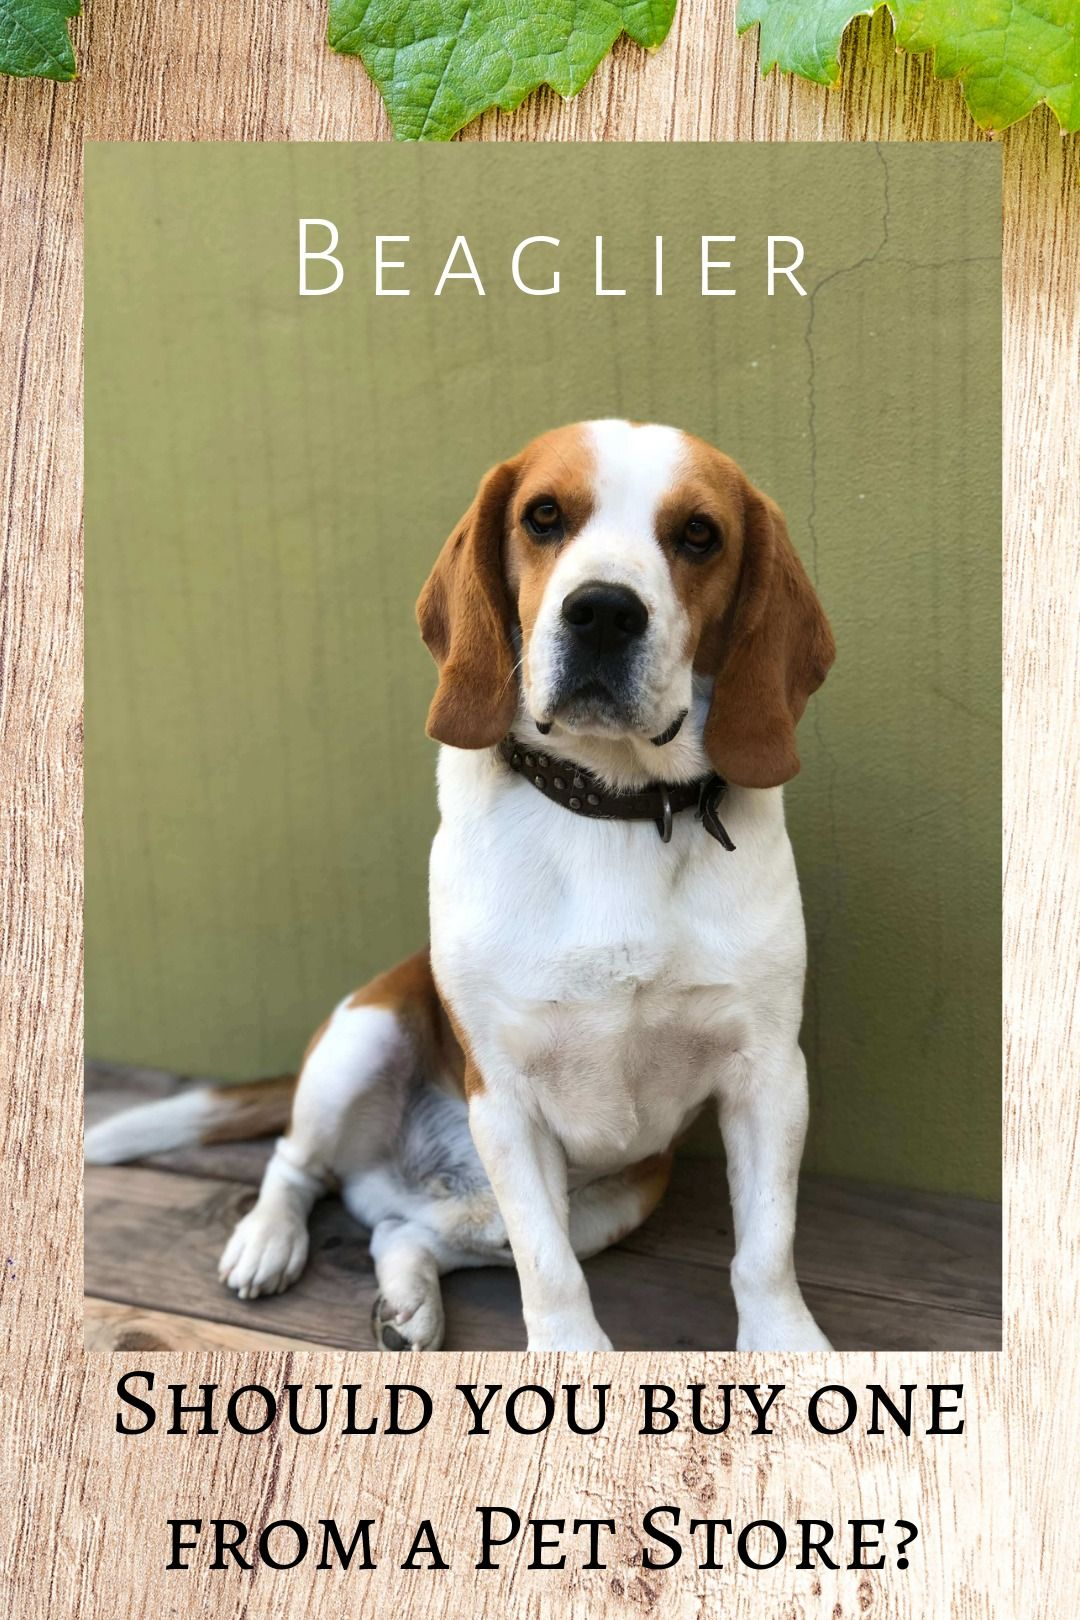 Buying A Beaglier Puppy From A Pet Store Pet Store Puppies Pets